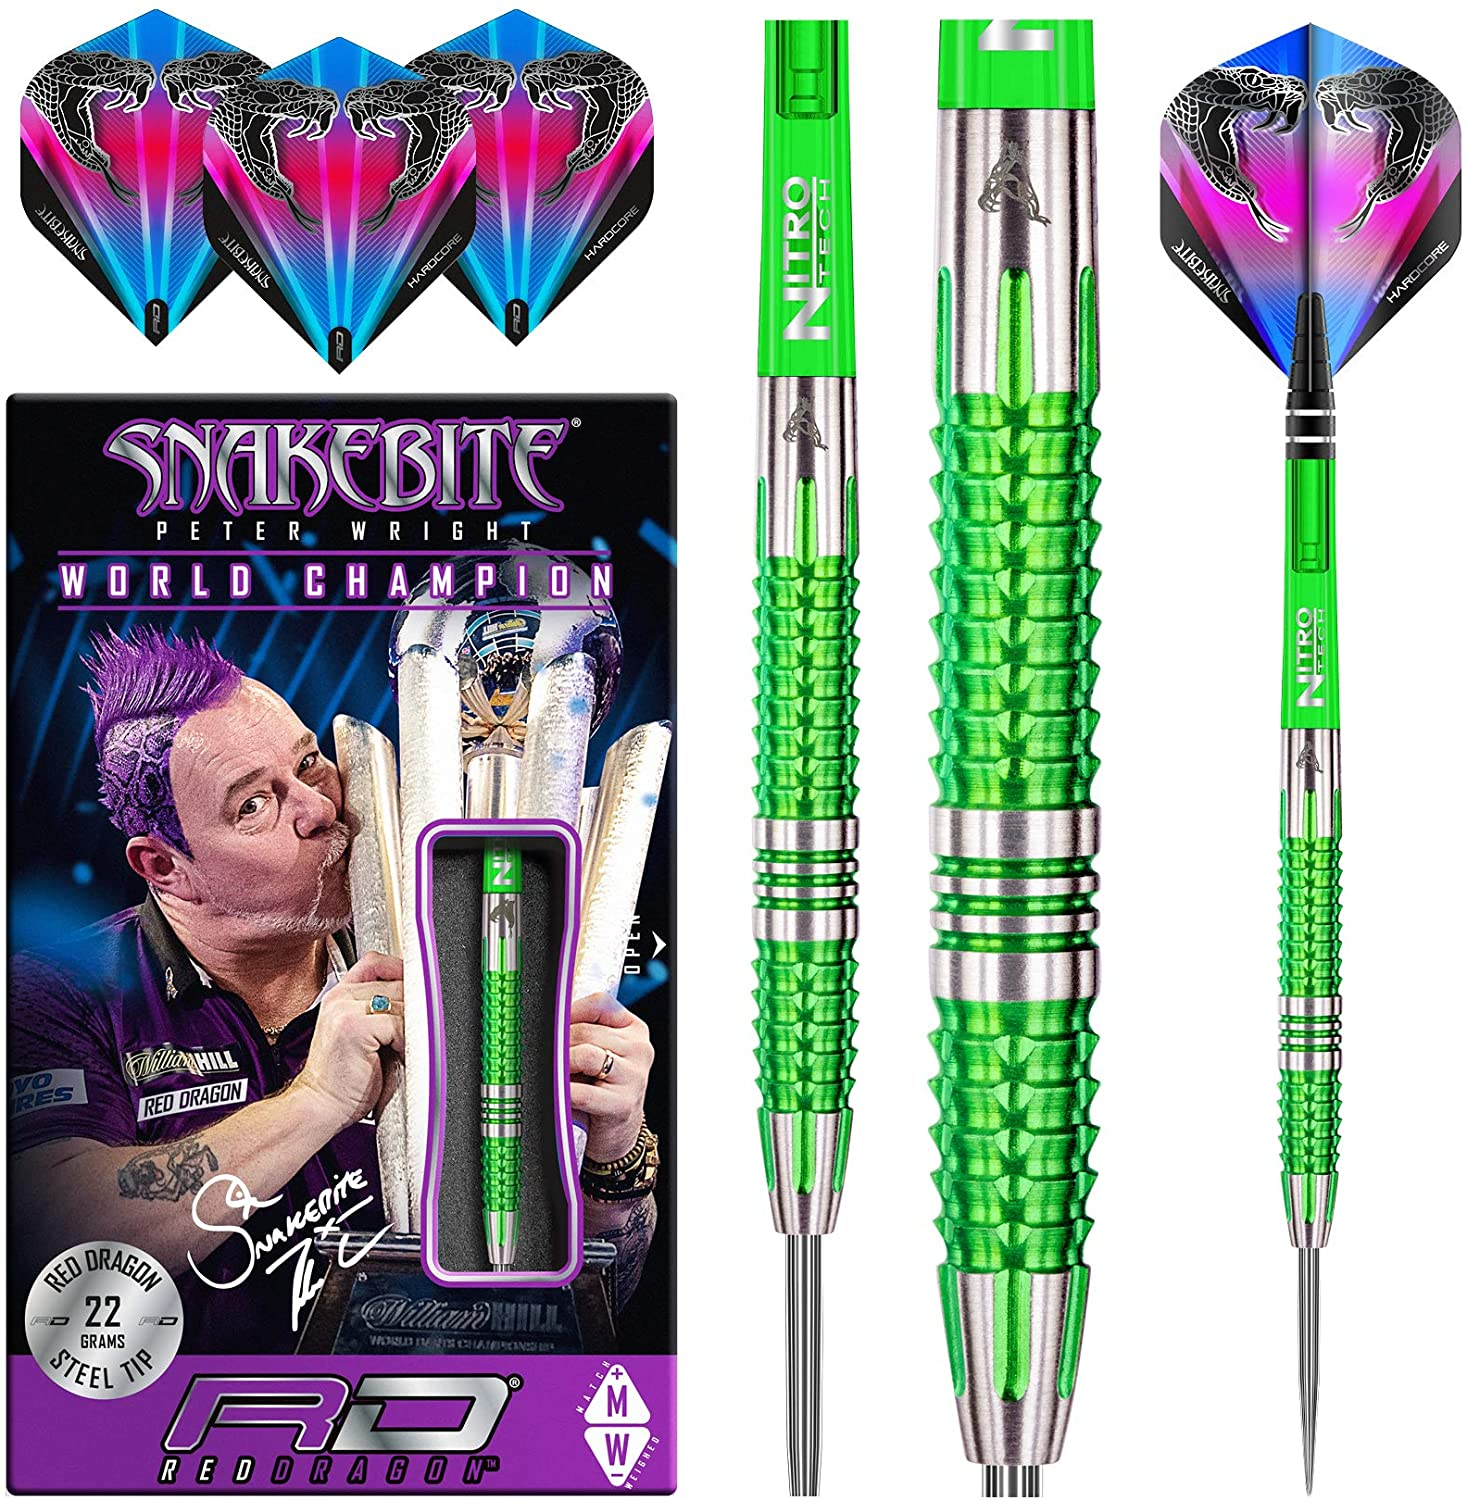 Red Dragon Peter Wright Snakebite Mamba 2: 22g or 24g Tungsten Darts Set with Flights and Stems